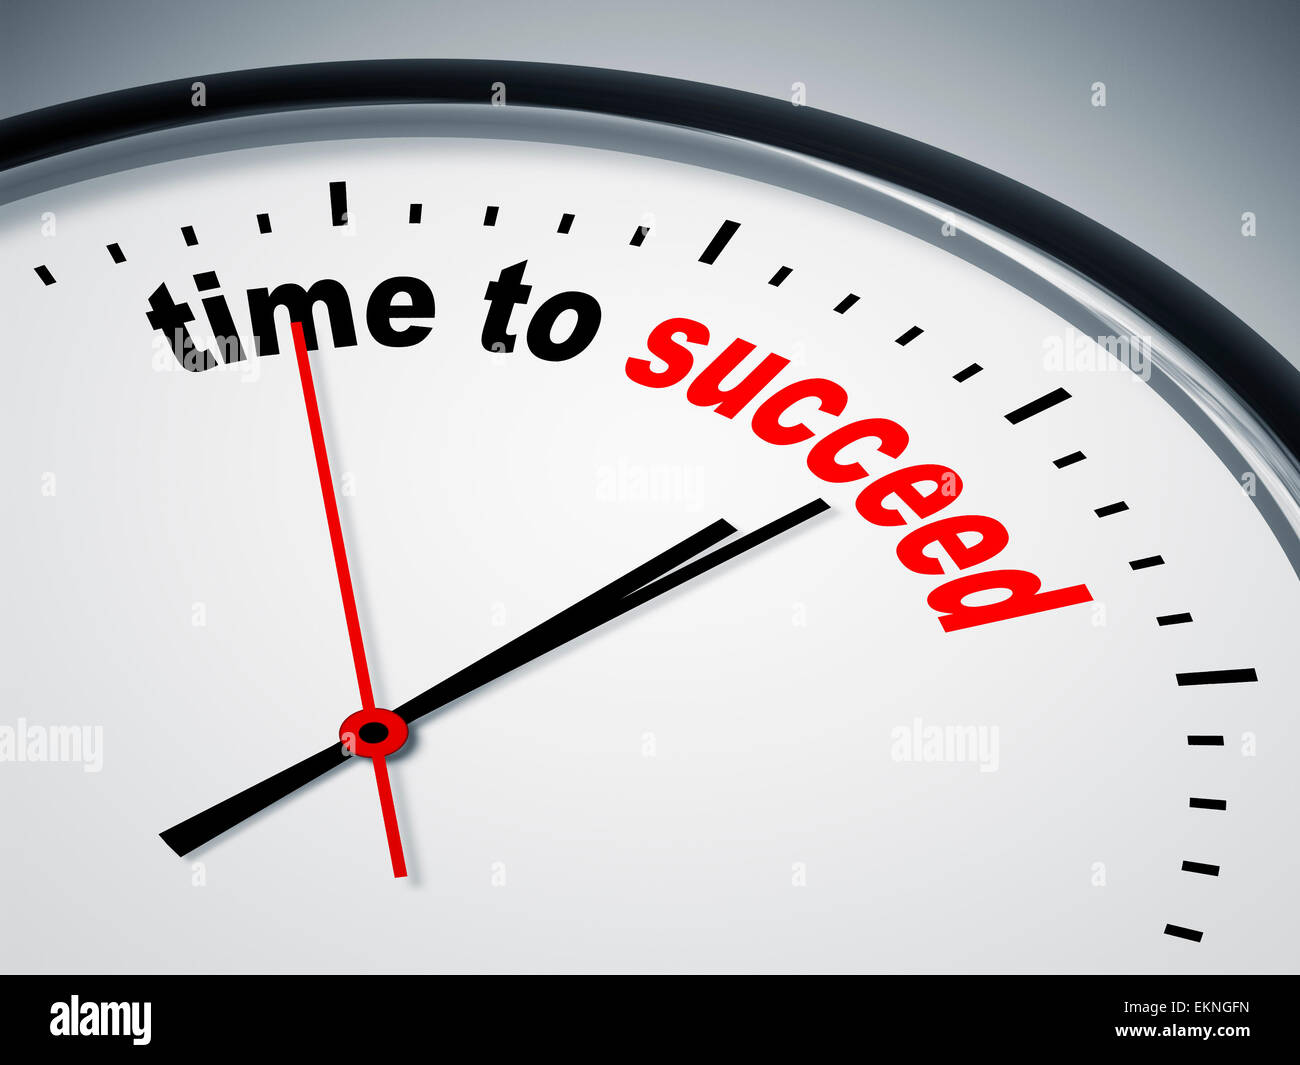 time to succeed - Stock Image